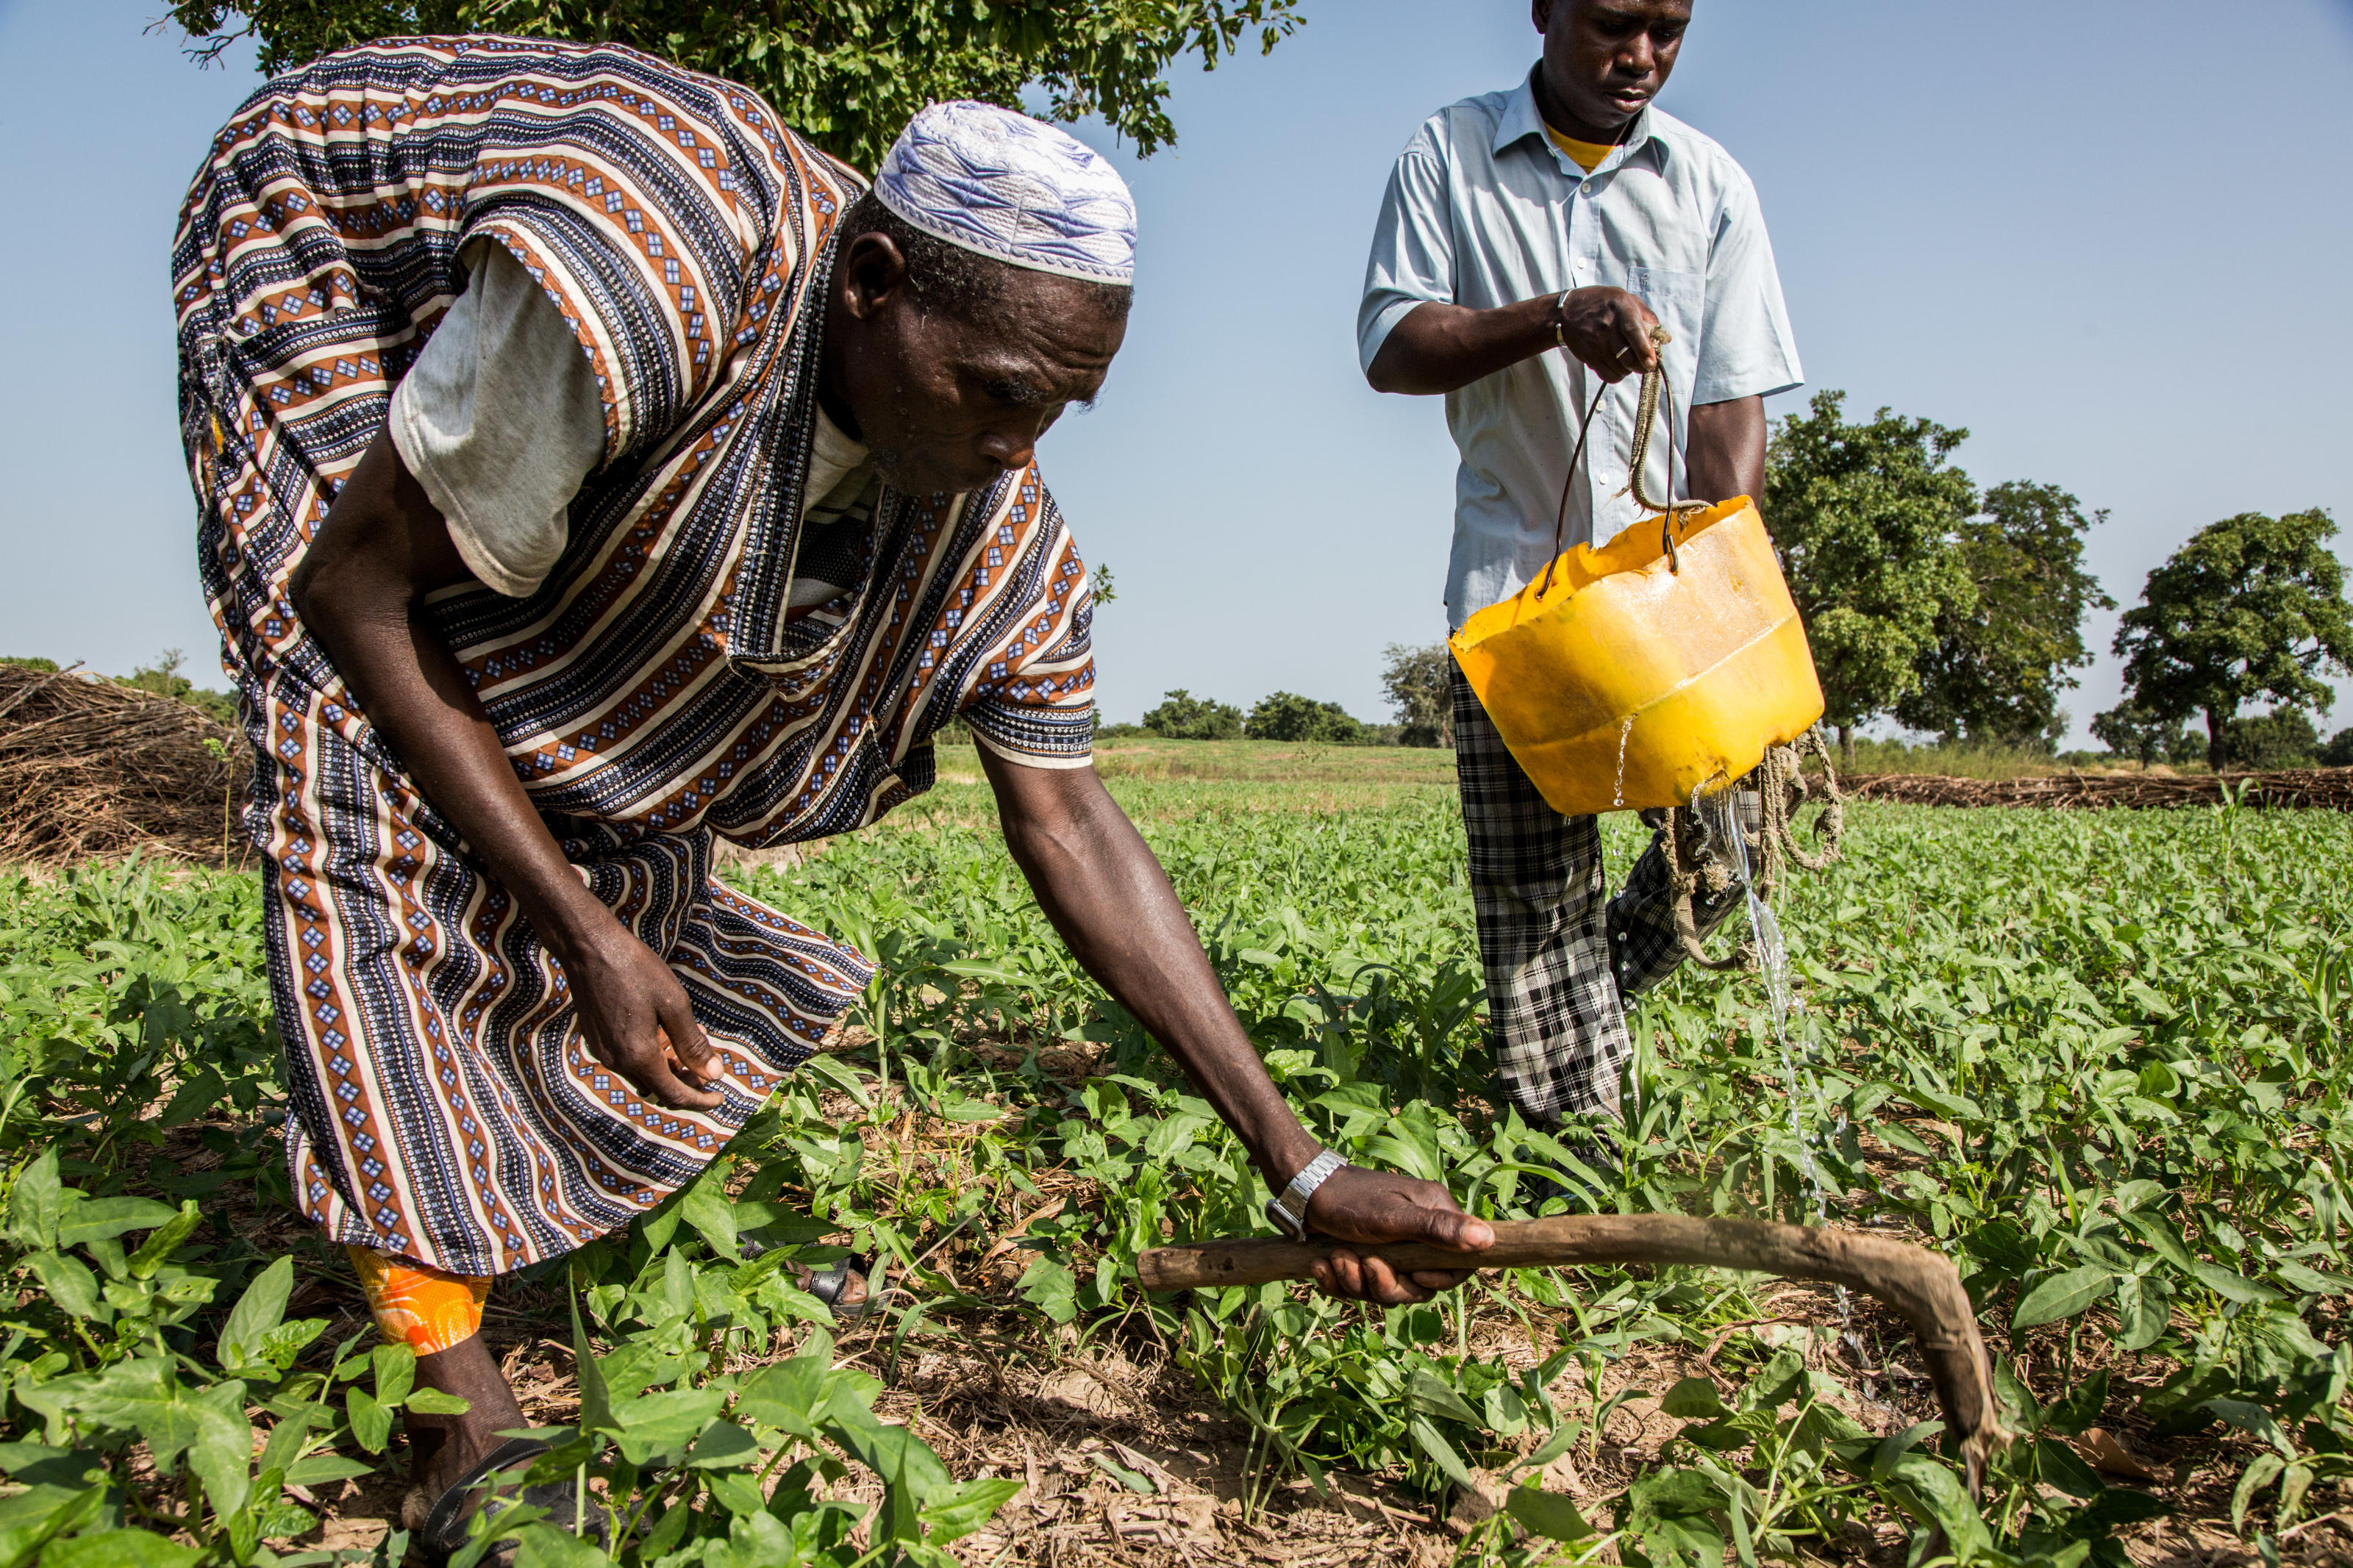 Bamogo Salam, 60, (left) hoes the earth while Bamogo Salifou, 30, waters crops in a market garden using water from a WaterAid well, in Basbedo, Burkina Faso, October 2014.